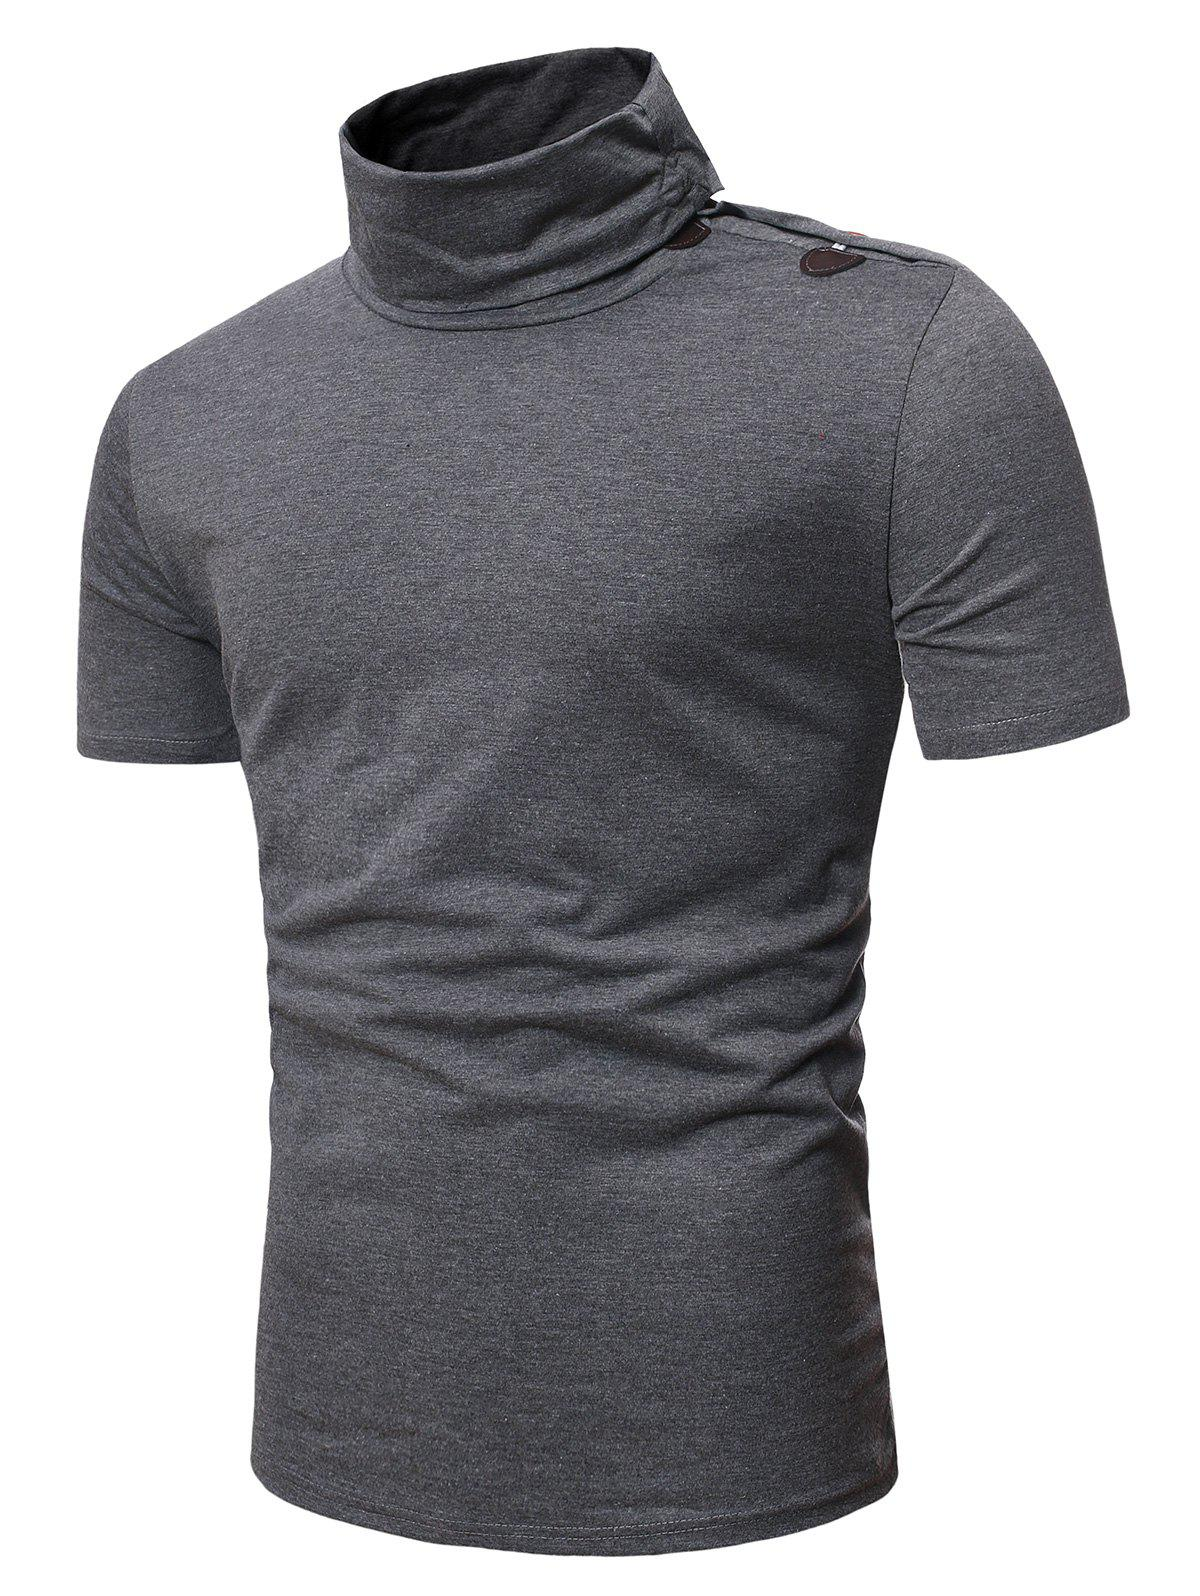 Turtleneck Horn Button Short Sleeve Slim Fit T Shirt - GRAY M